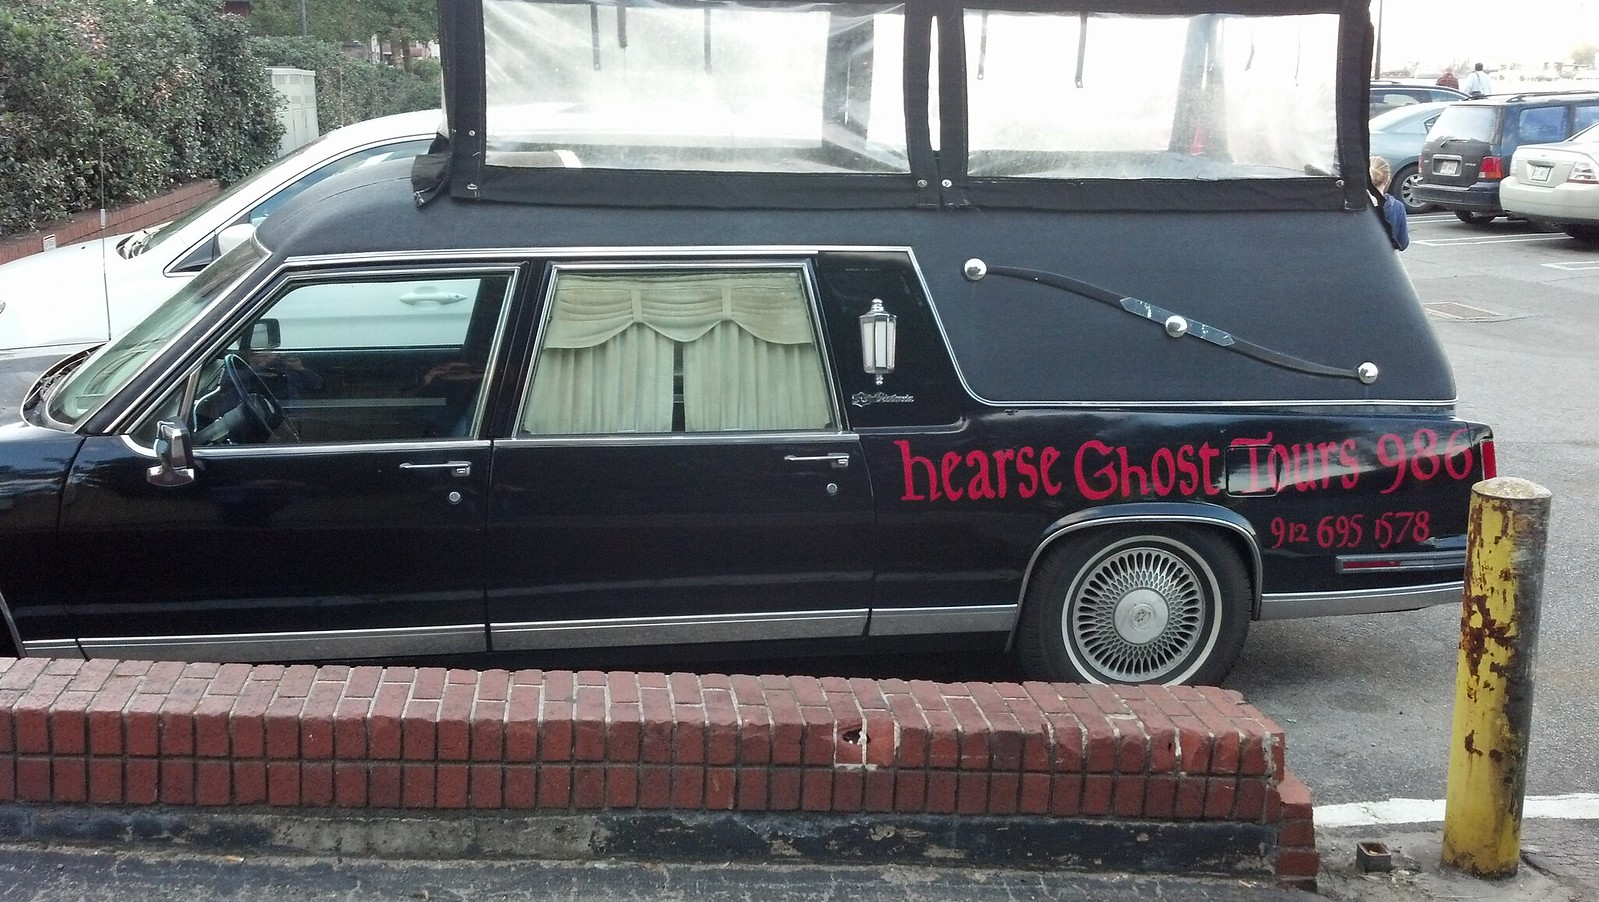 Hearse Ghost Tours with fancy sunroof (coffinroof?)